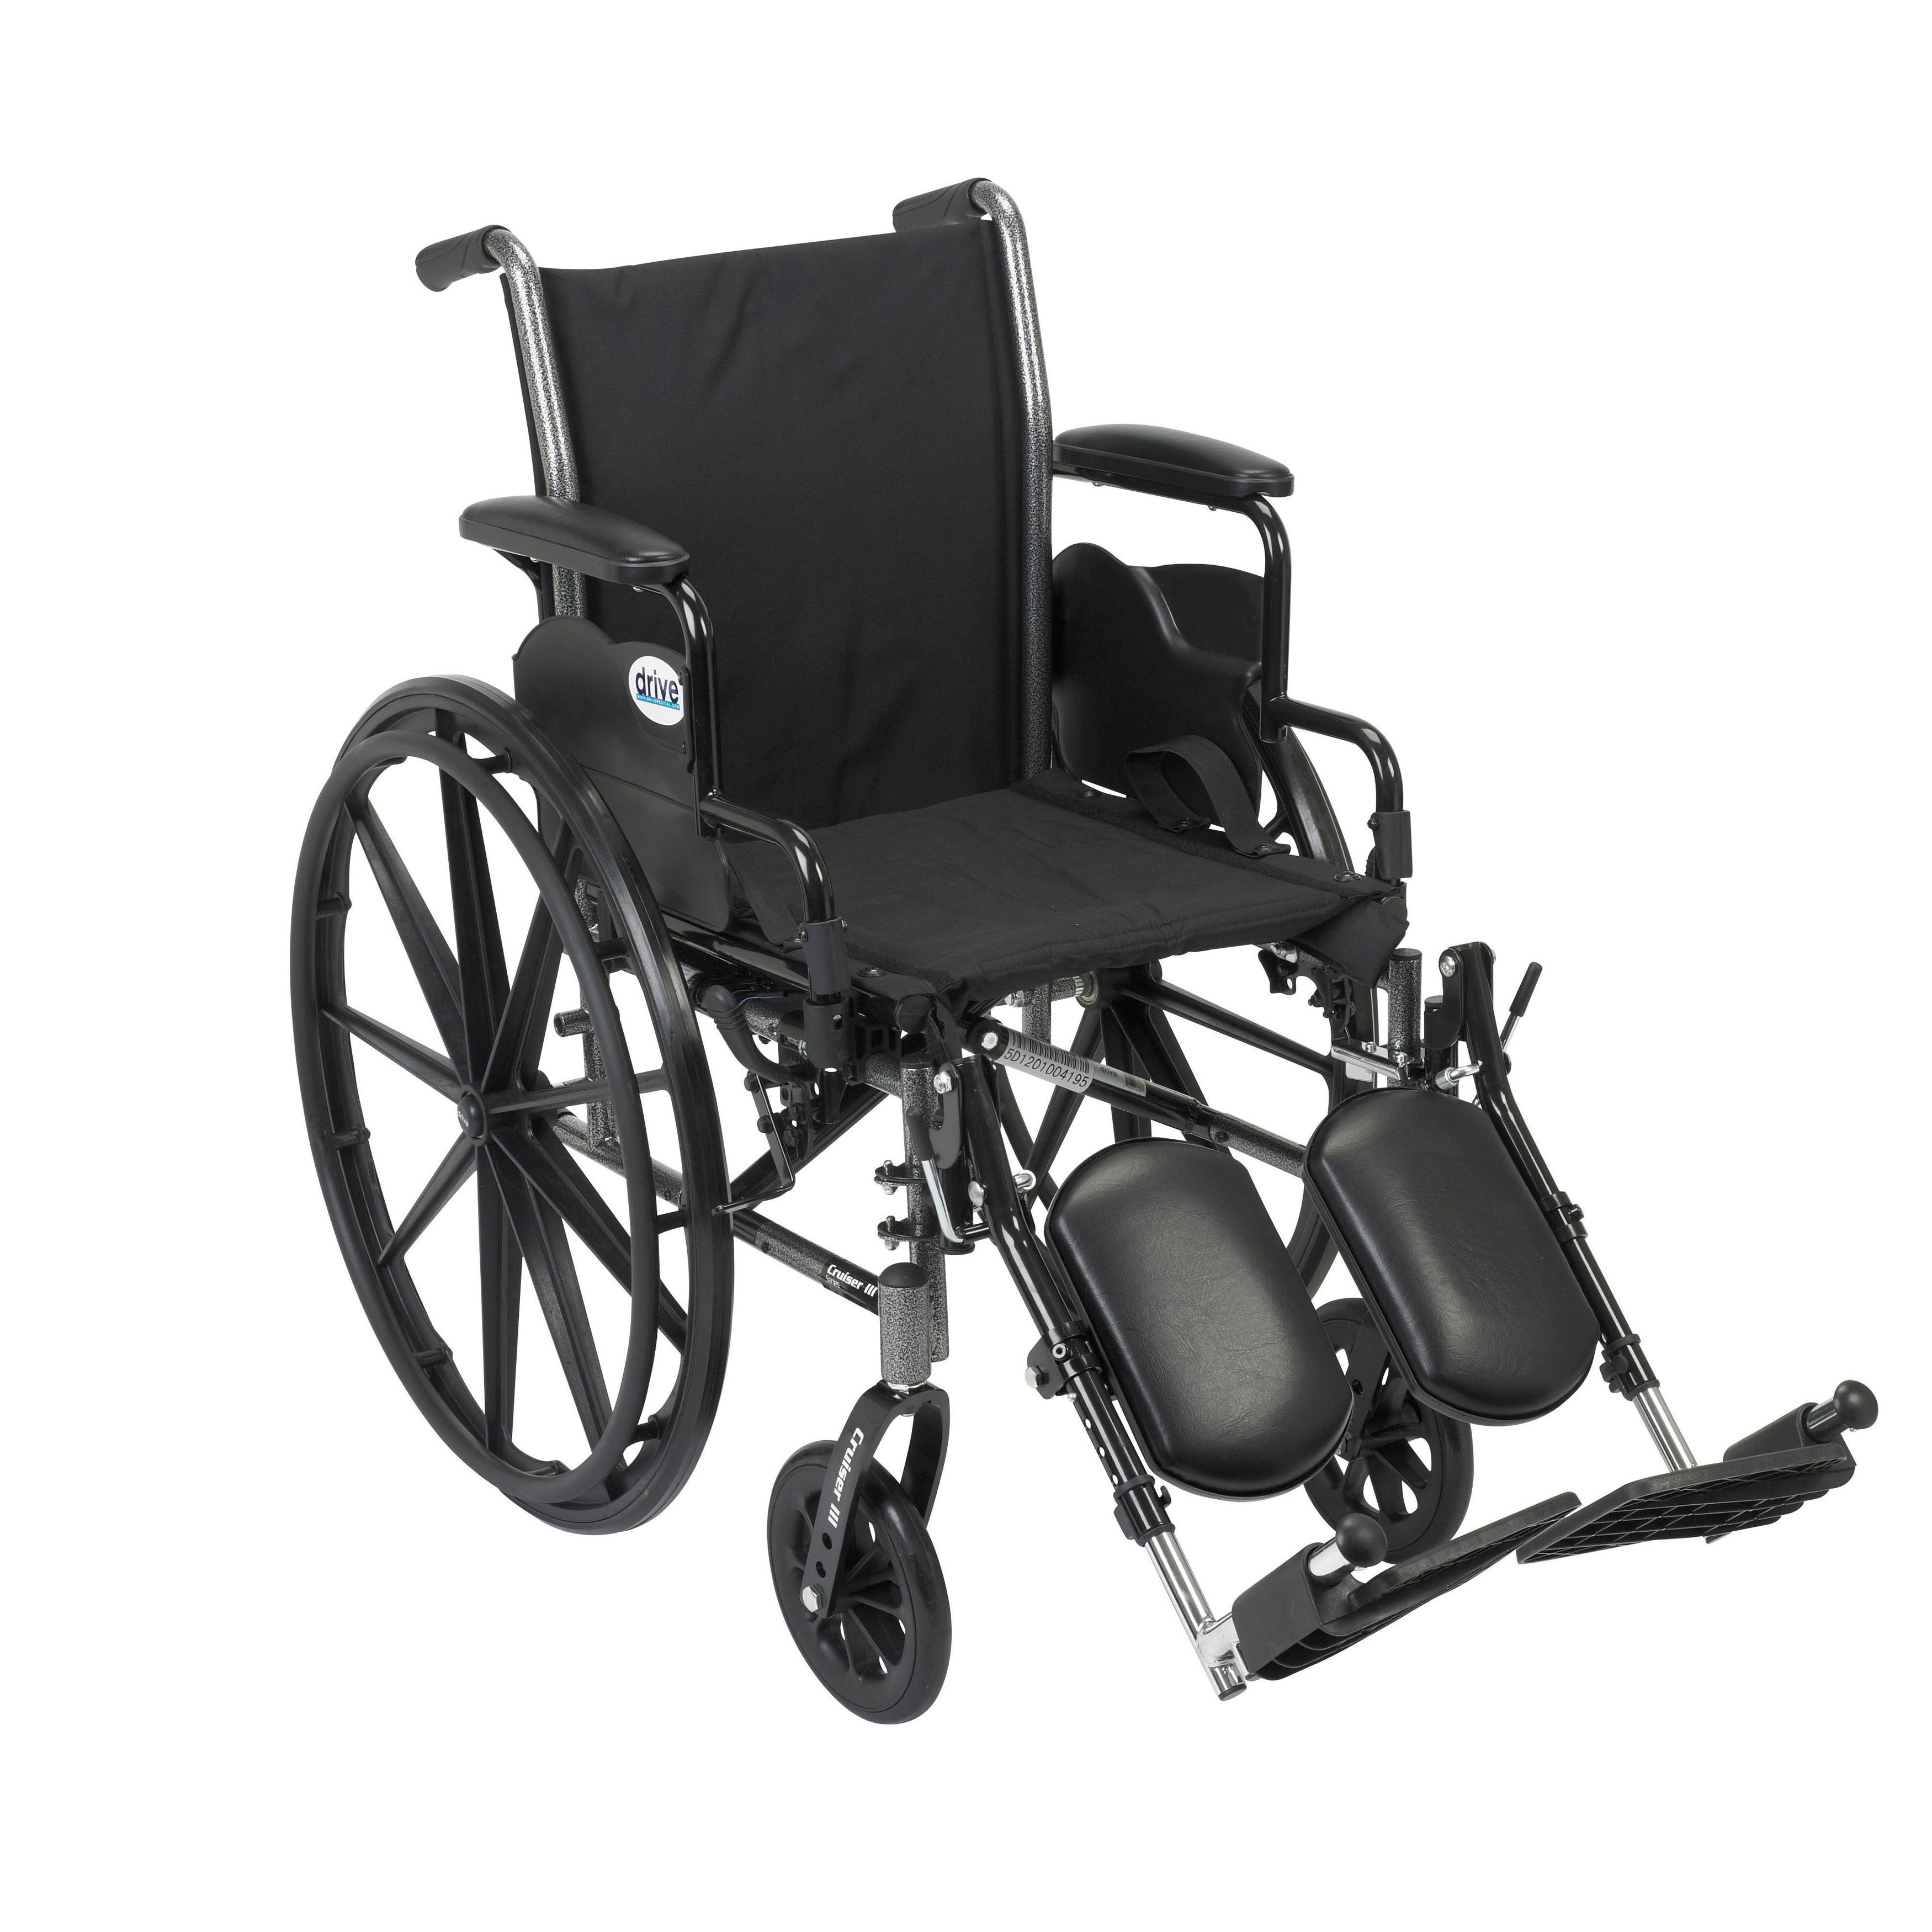 Cruiser III Lightweight Wheelchair with Flip Back Arms and Front Rigging Options